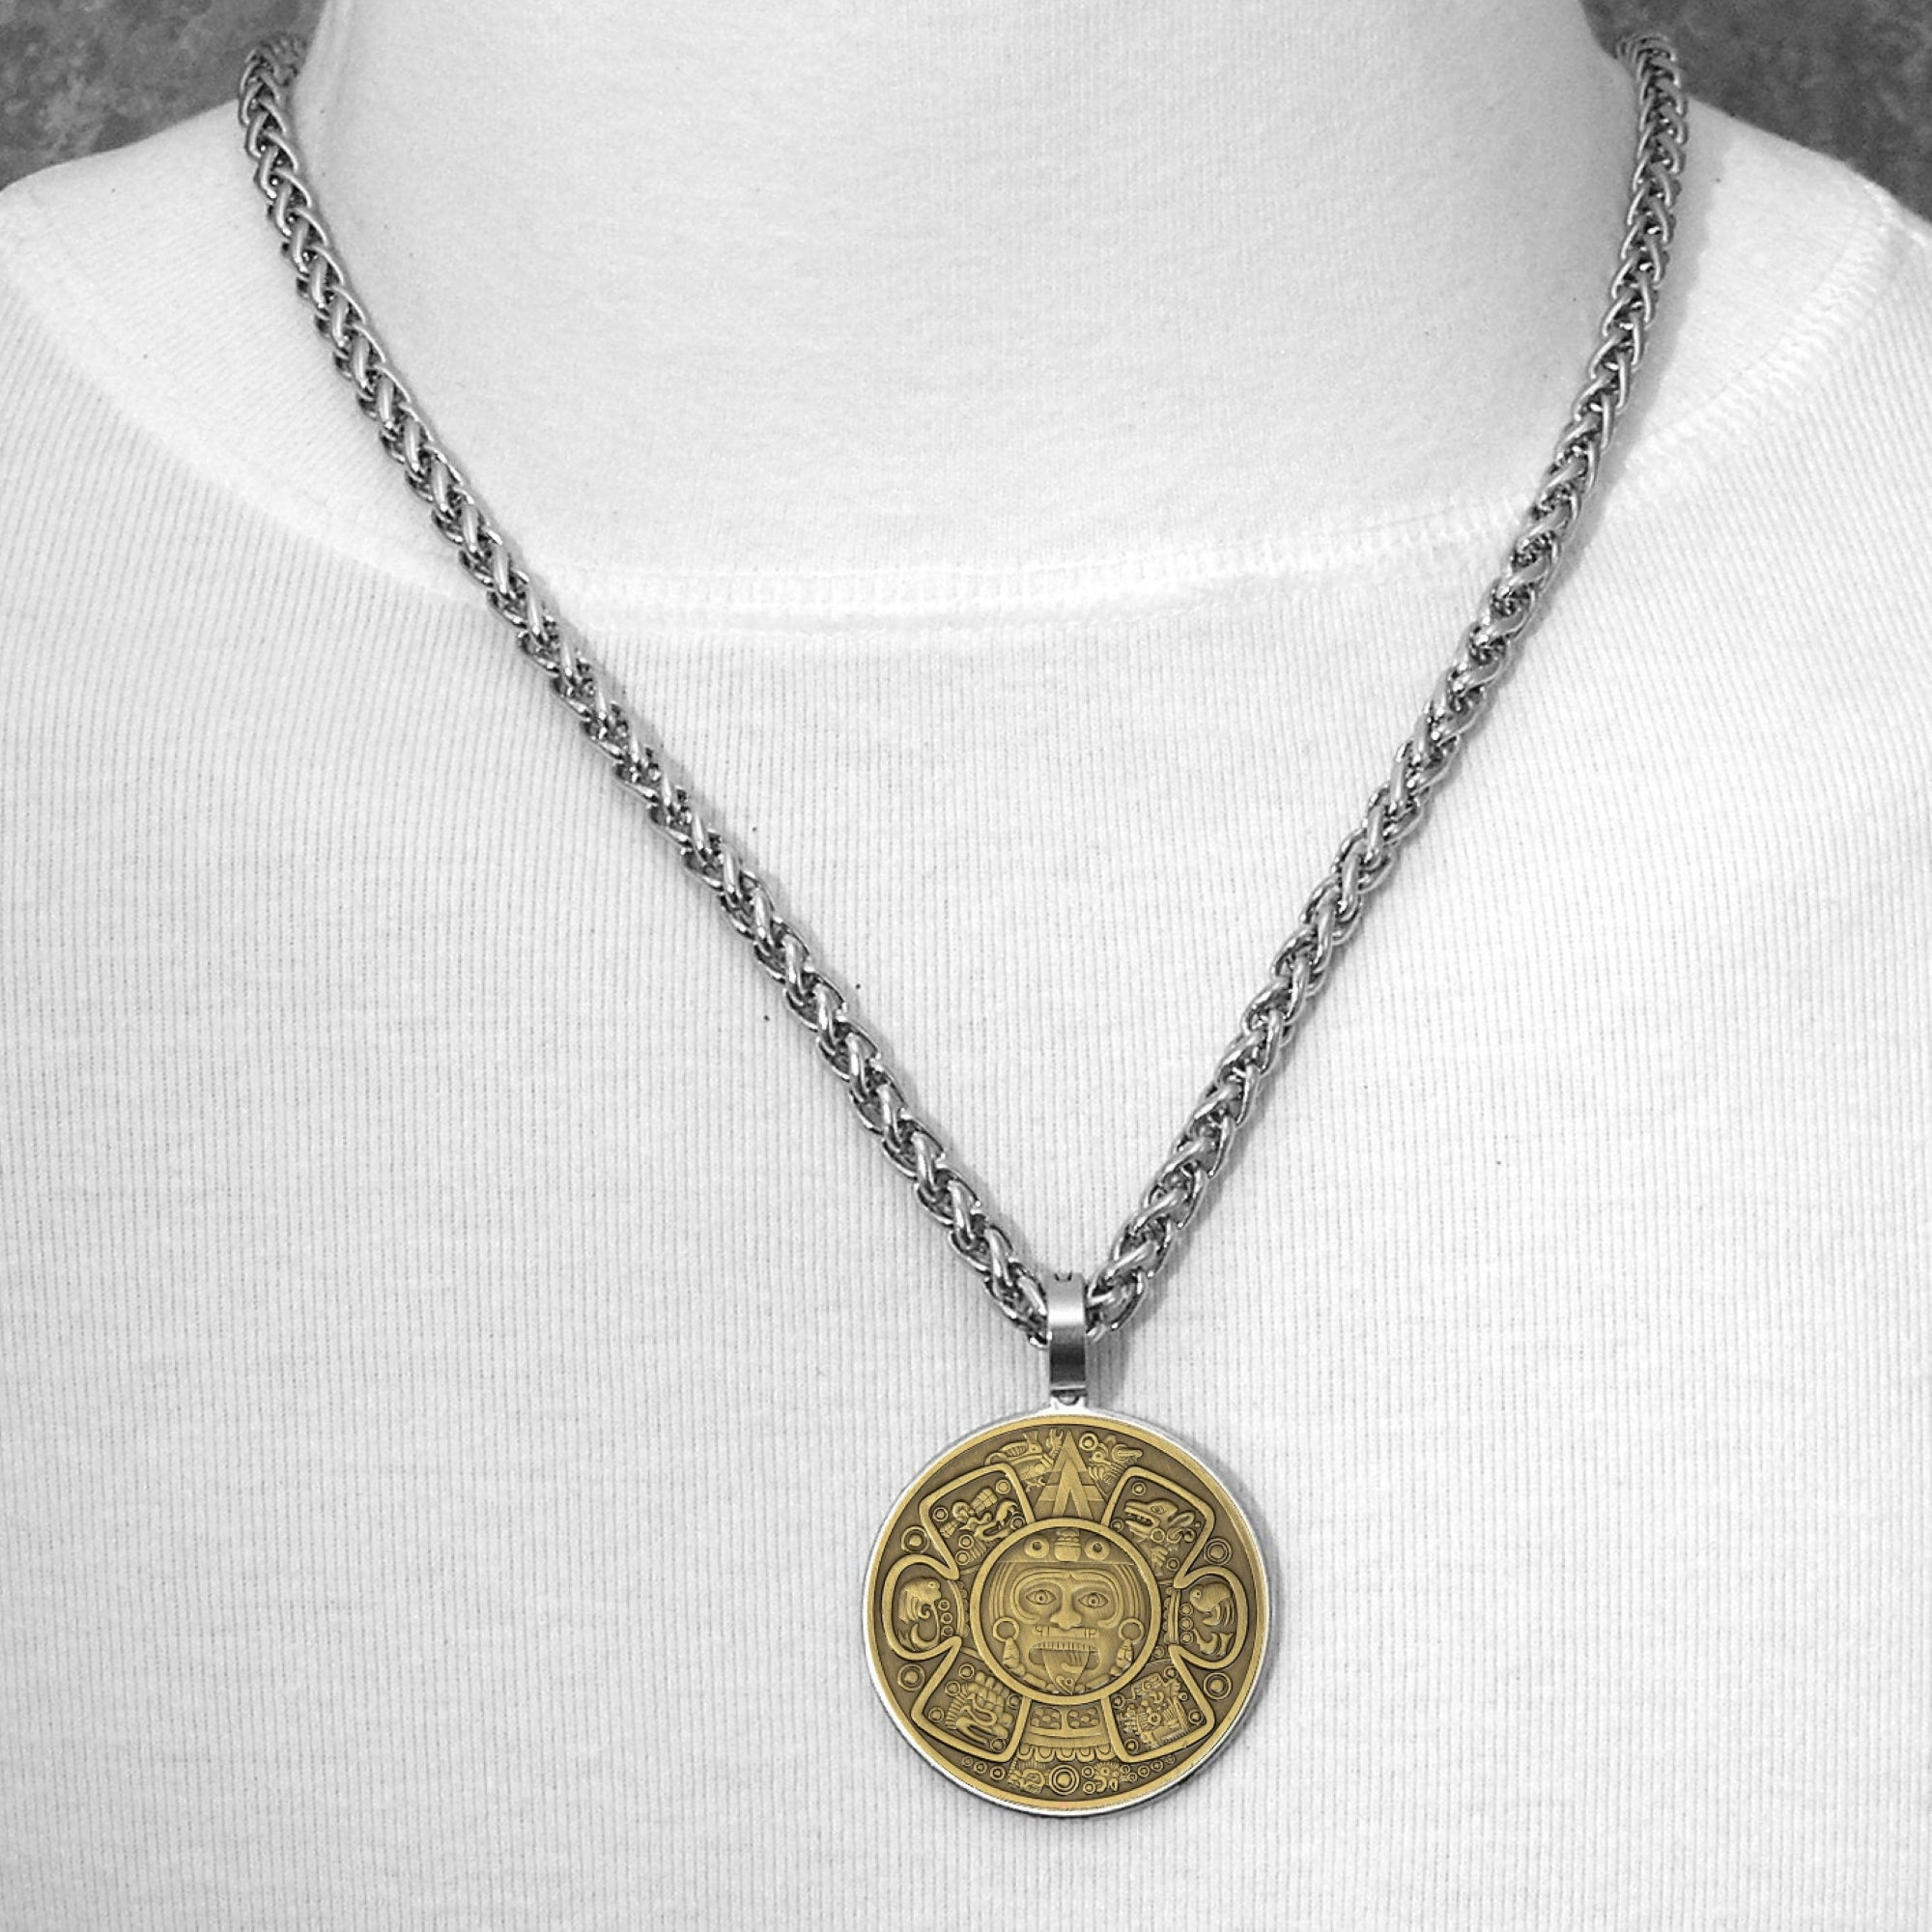 Legendary Aztec Calendar Sun Stone Central Design Antique Bronze Finish Coin In Stainless Steel Bezel Setting with Chain Necklace Option